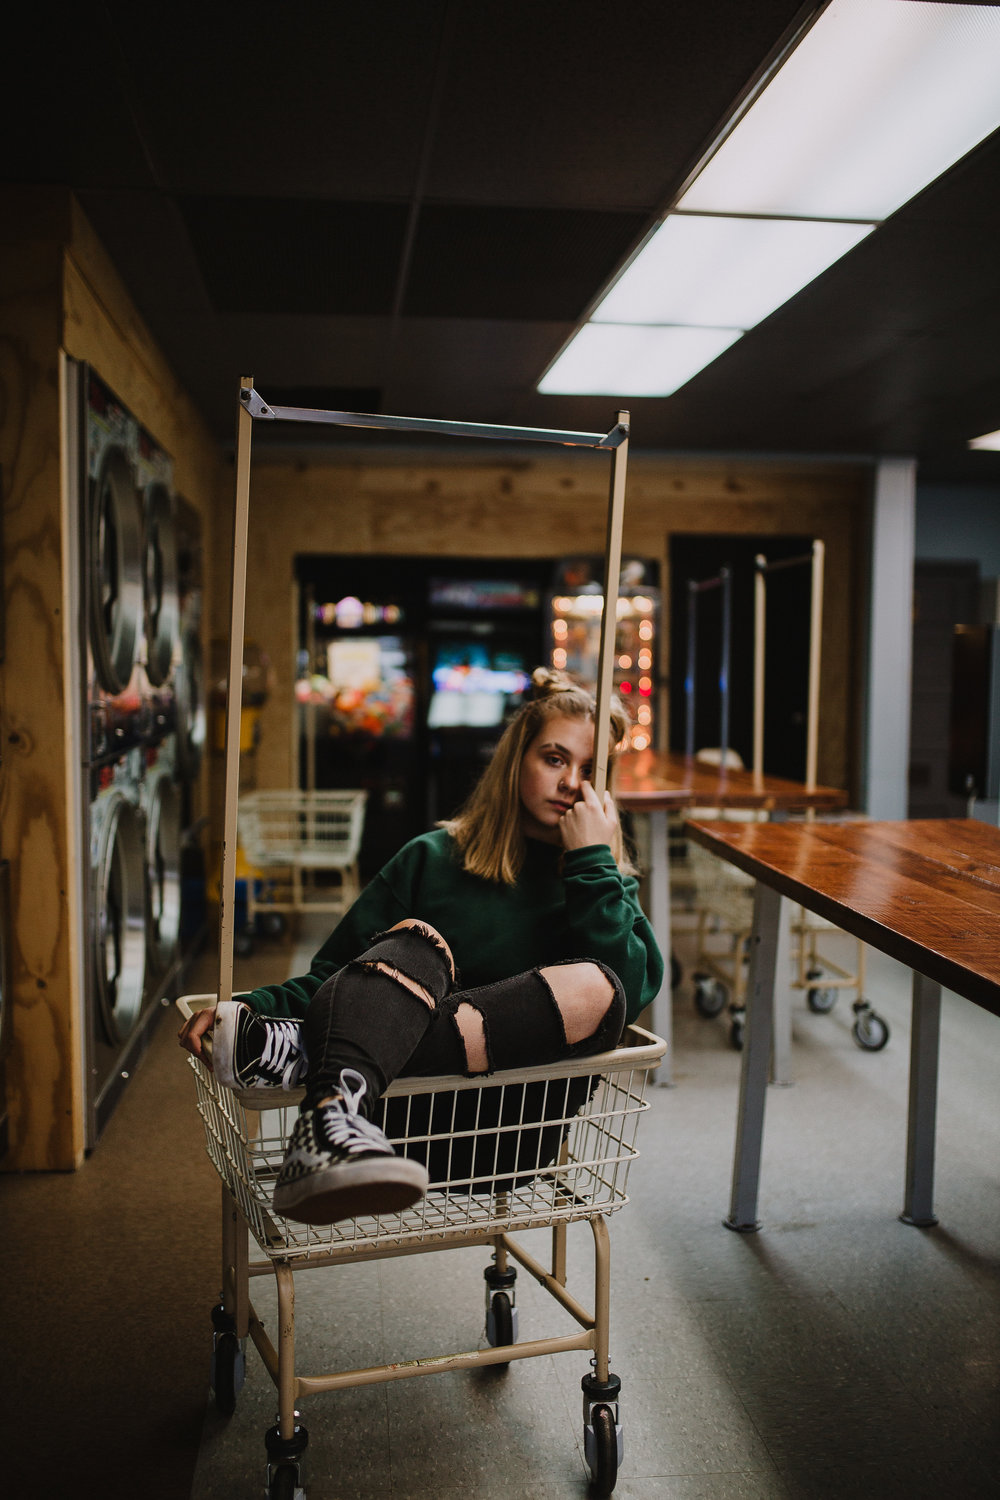 RUTHIE-GASSTATION-MUNCIE-INDIANA-REAGANLYNNPHOTOGRAPHY-3.1.18-14.jpg